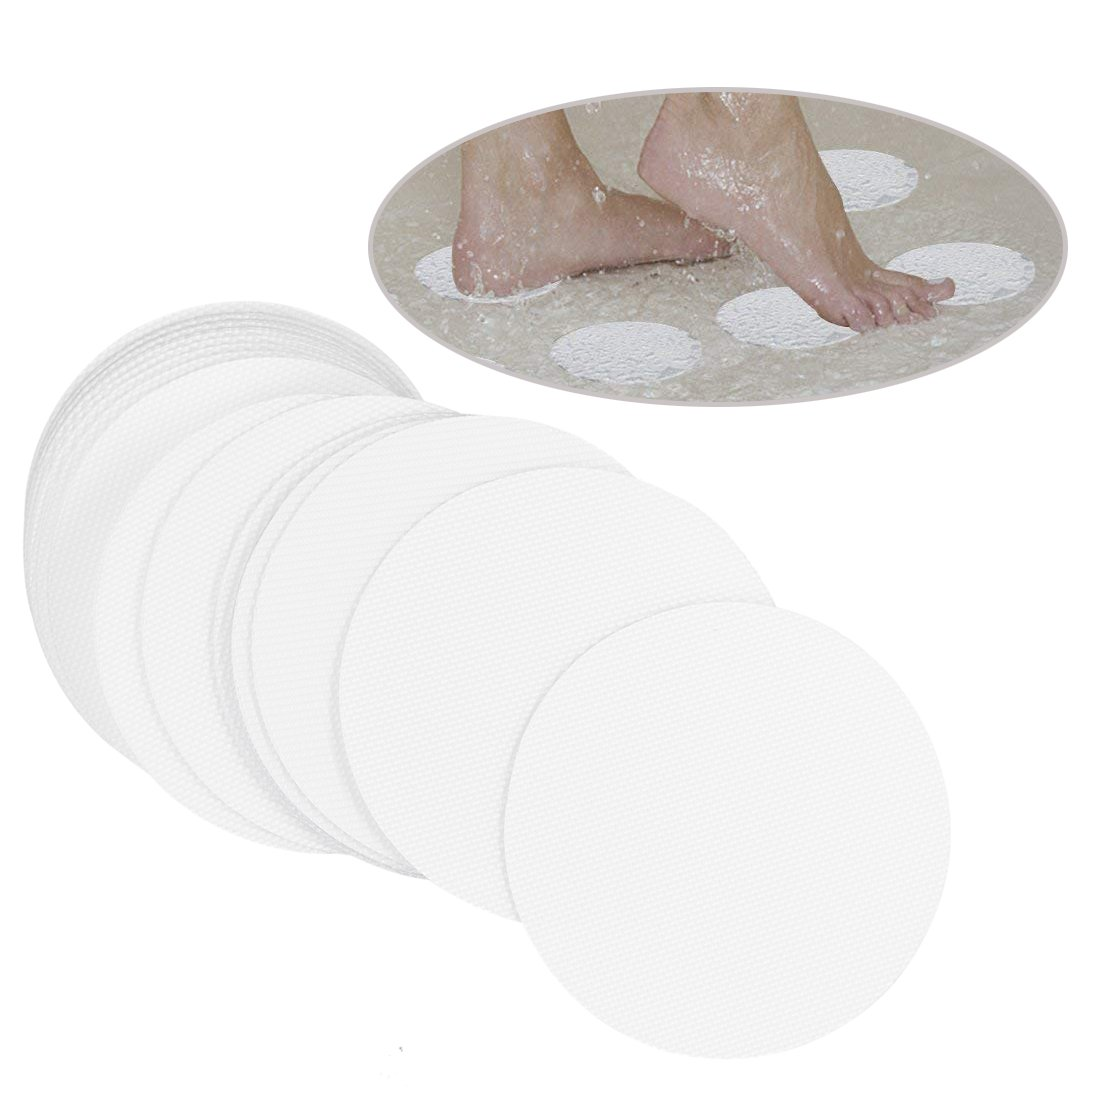 10cm PEVA Clear Anti-slip Discs Tape Non Slip Stickers for Tubs Bath Blue Handcart 20 Pieces Safety Shower Treads